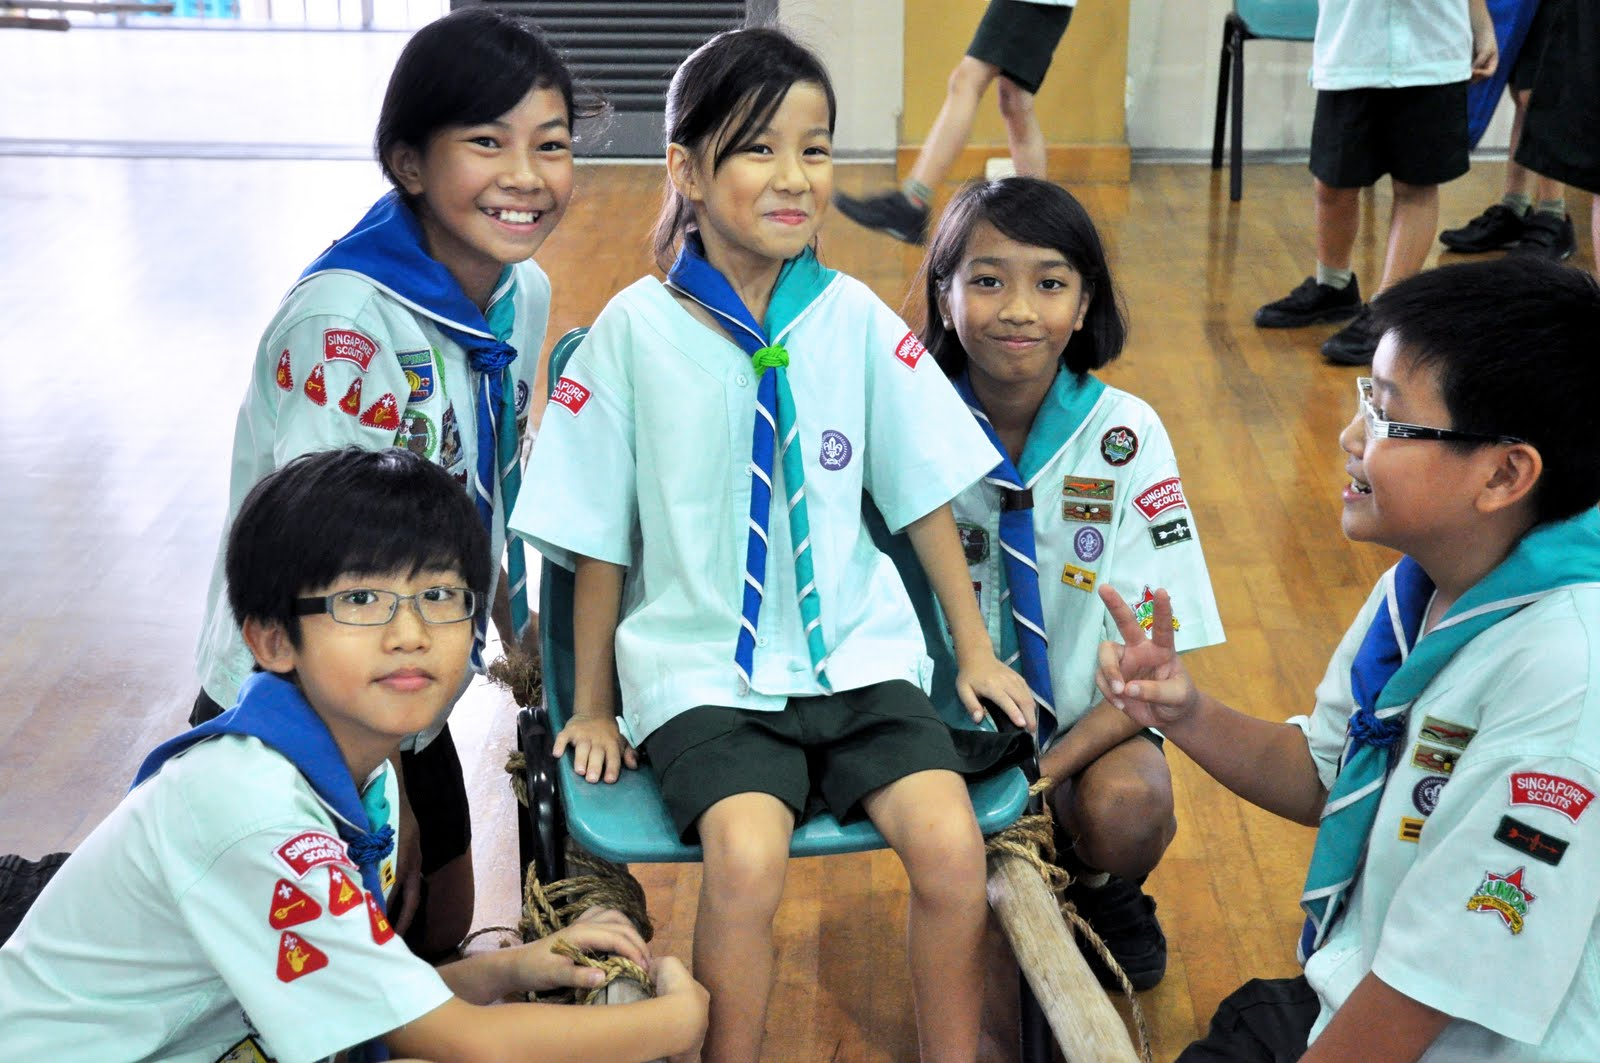 girl scout uniforms around the world pictures to pin on